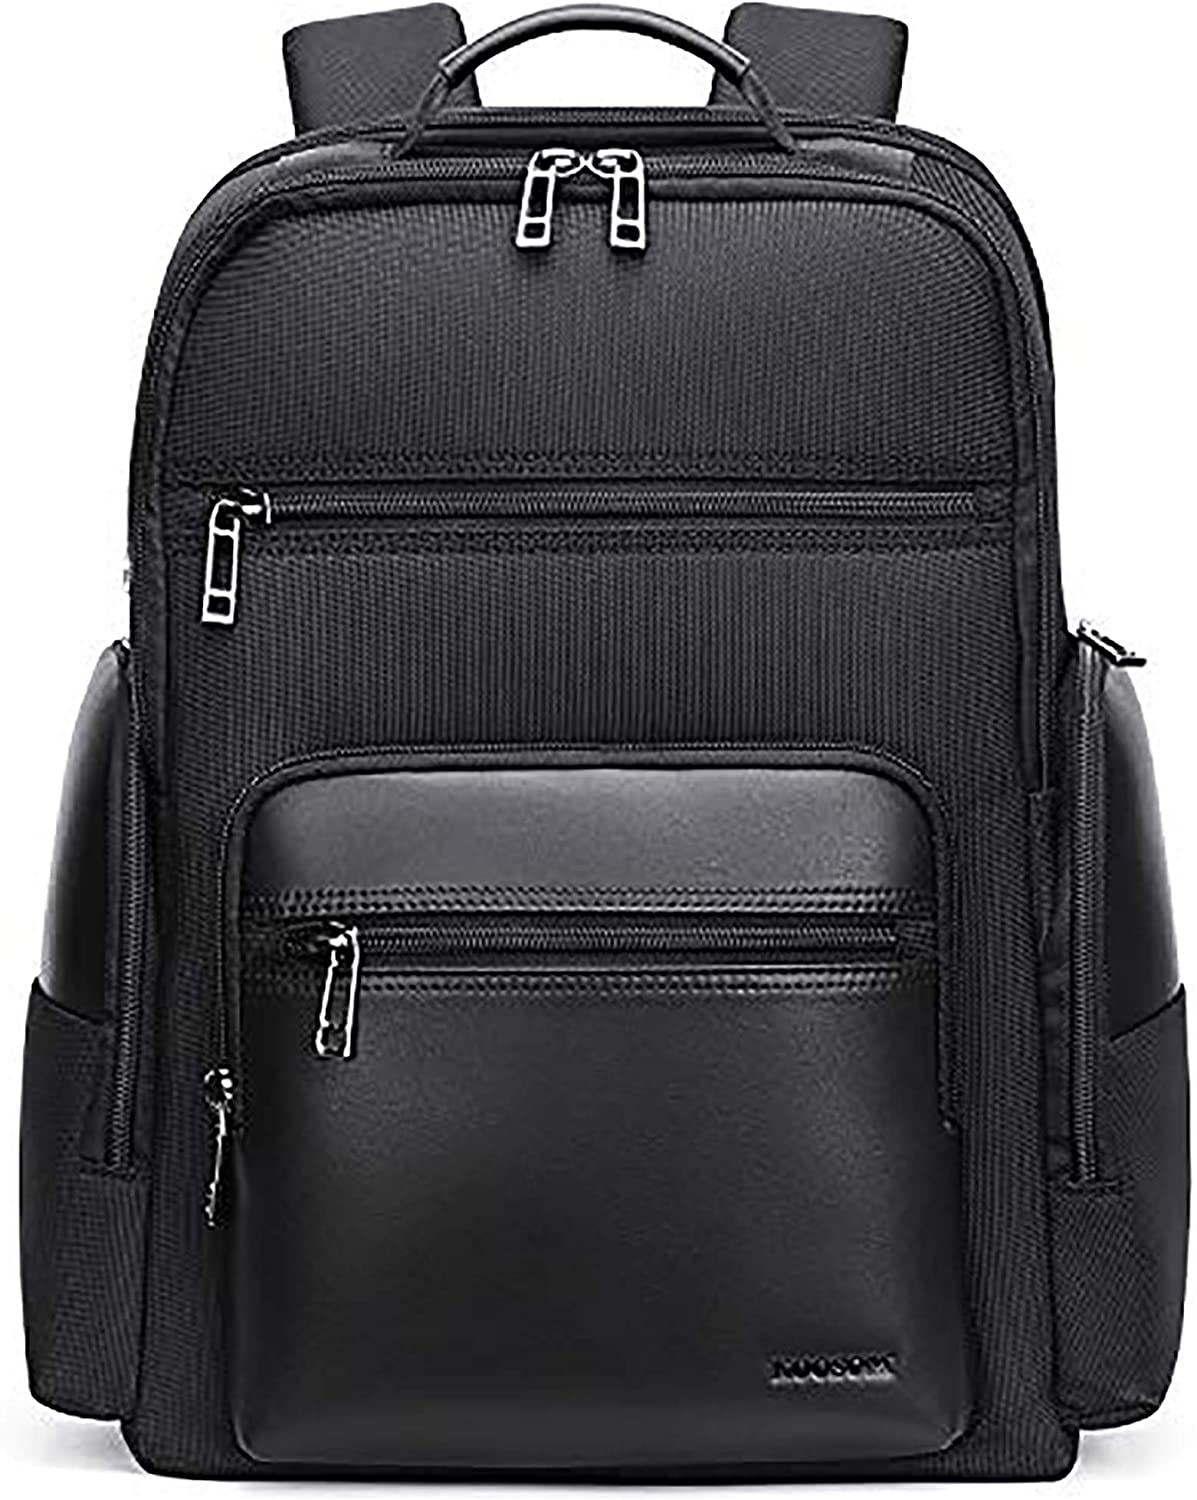 KOOSOM 36L 15.6 inch Laptop Backpack KOOSOM USB Anti-Theft Travel Rucksack for Men Business Office College